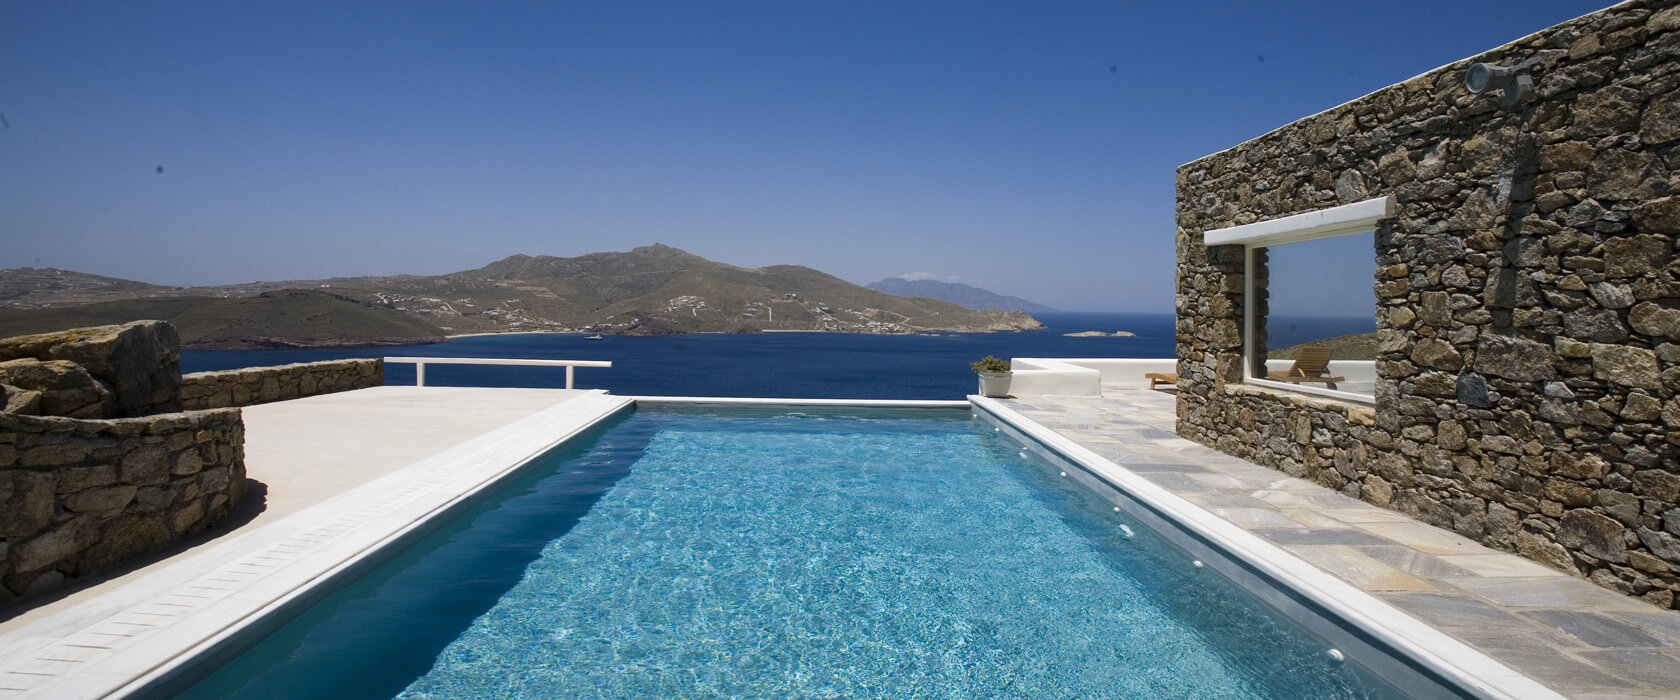 Villas Greece